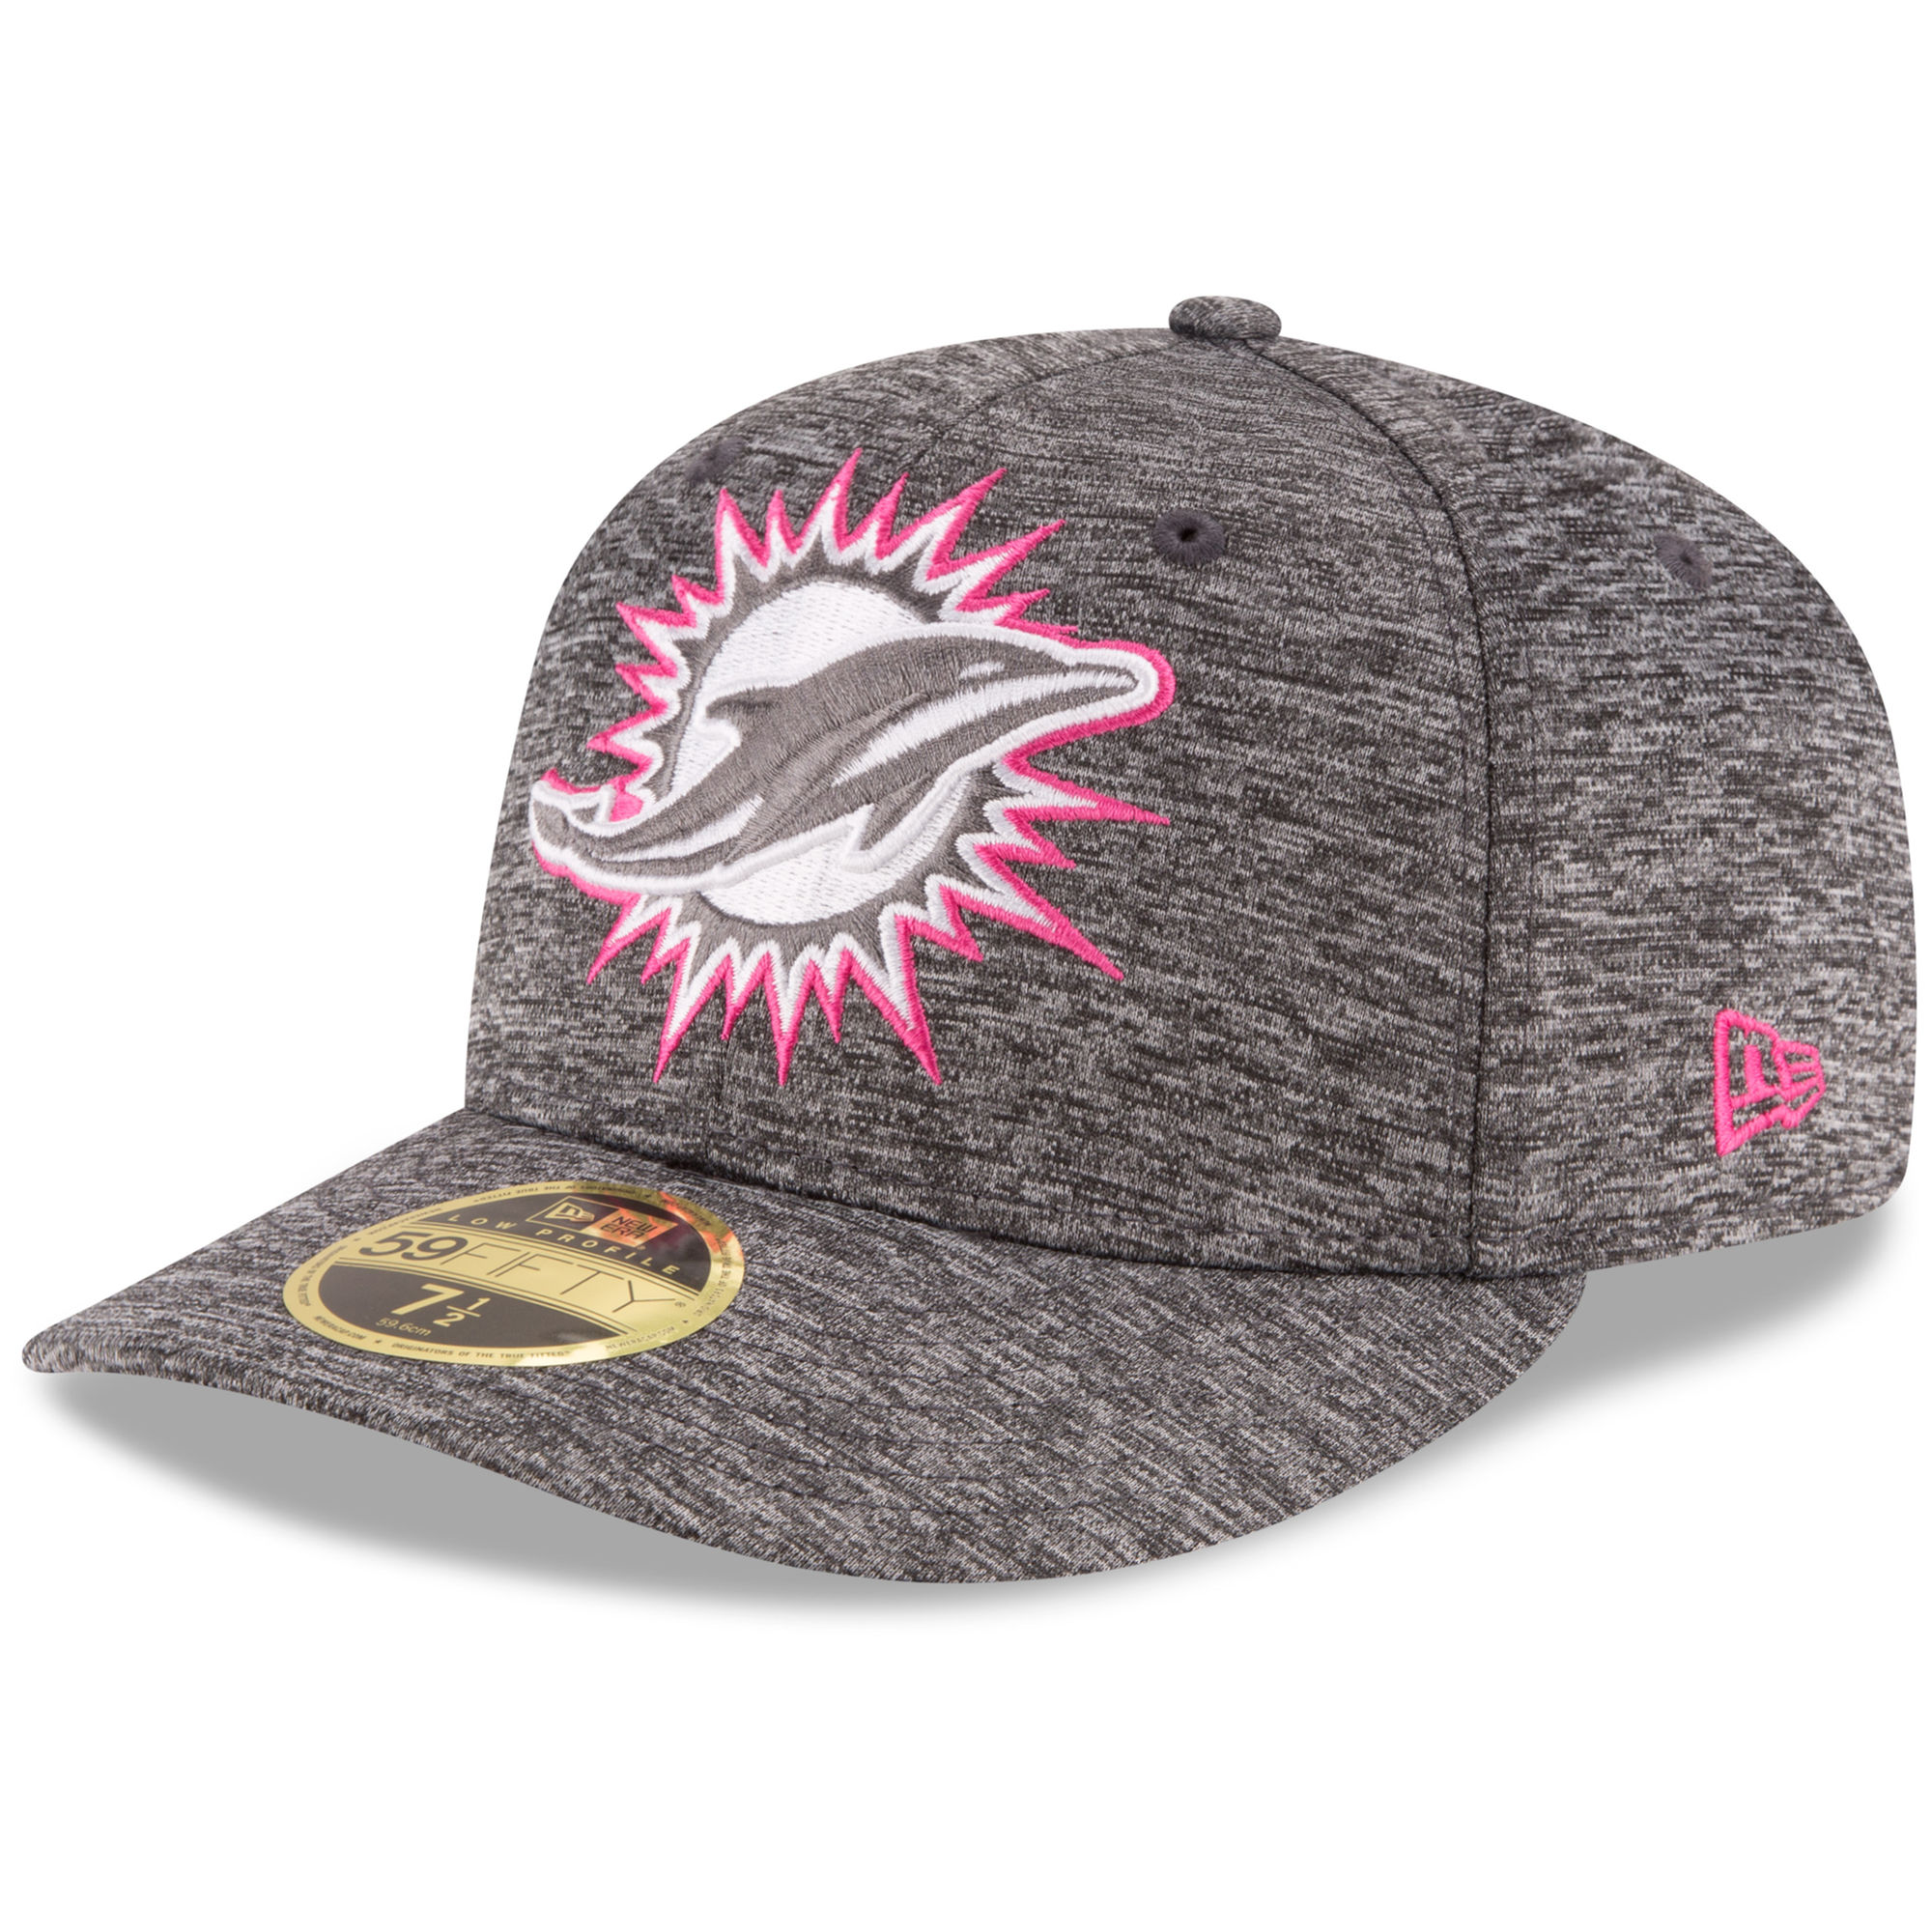 Miami Dolphins 2016 Breast Cancer Awareness Miami Dolphins 2016 Breast  Cancer Awareness ... d1c0b4ff5bb7